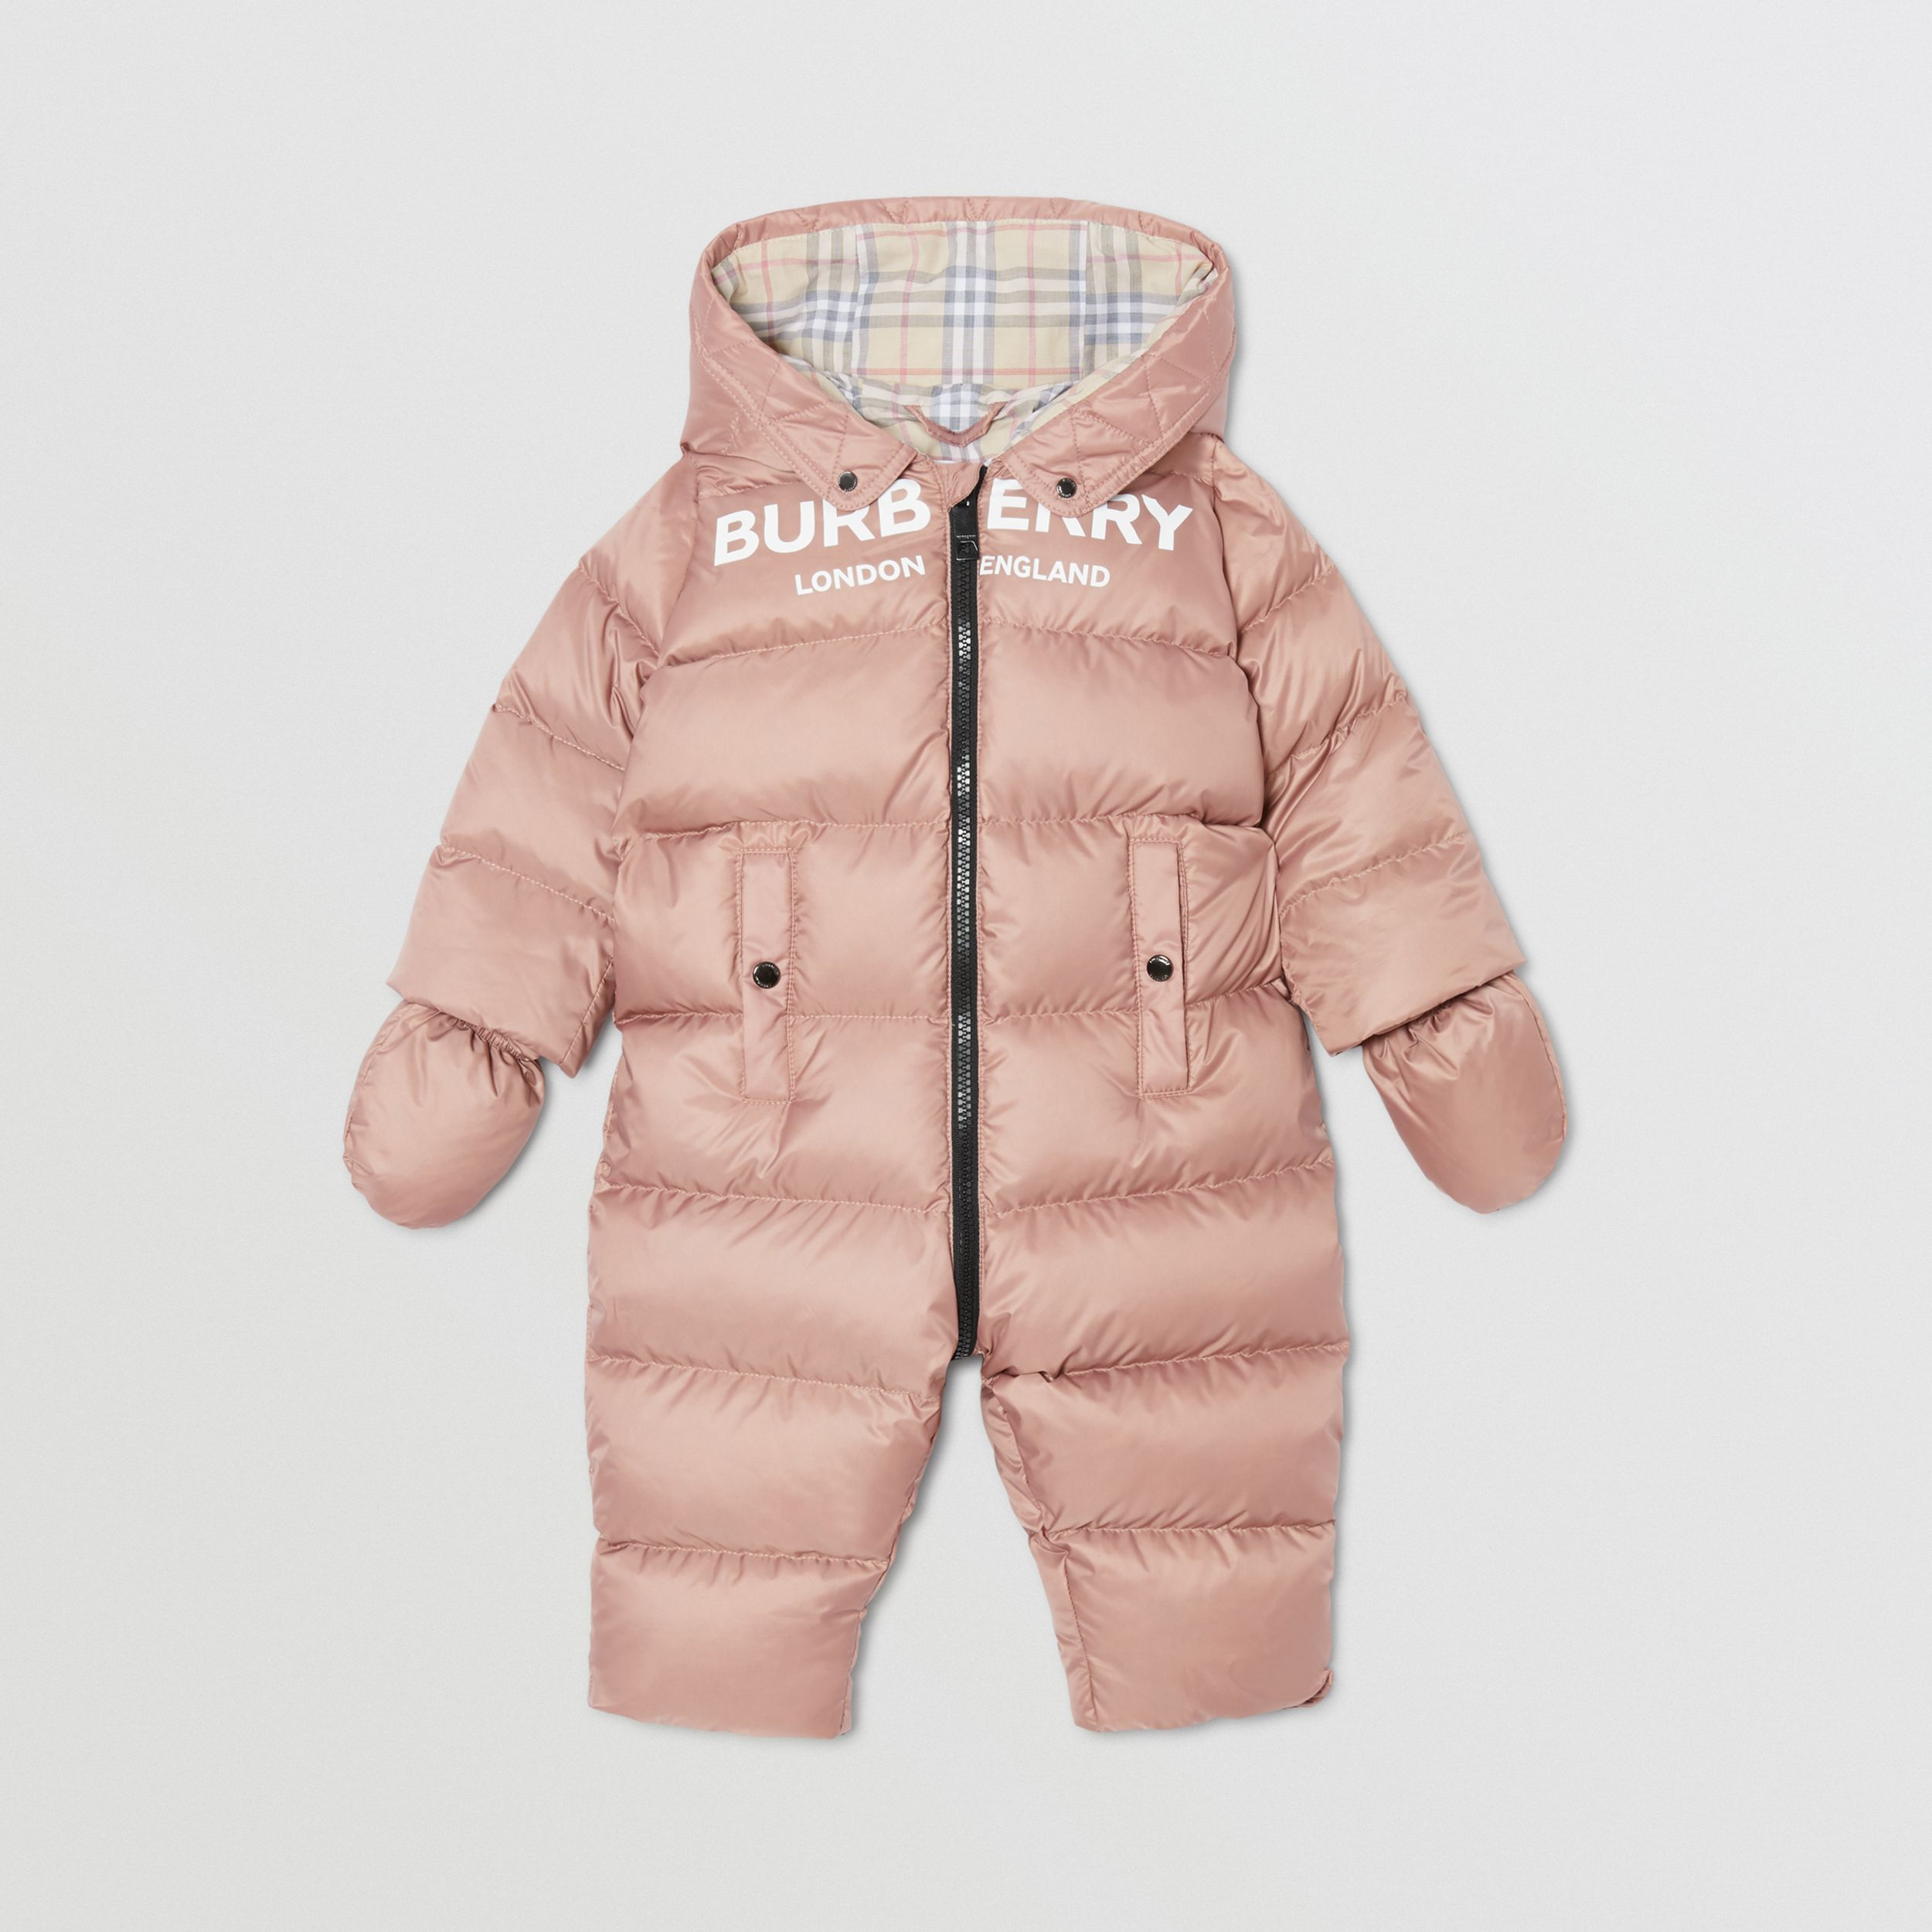 Logo Print Down-filled Puffer Suit in Lavender Pink - Children | Burberry - 3